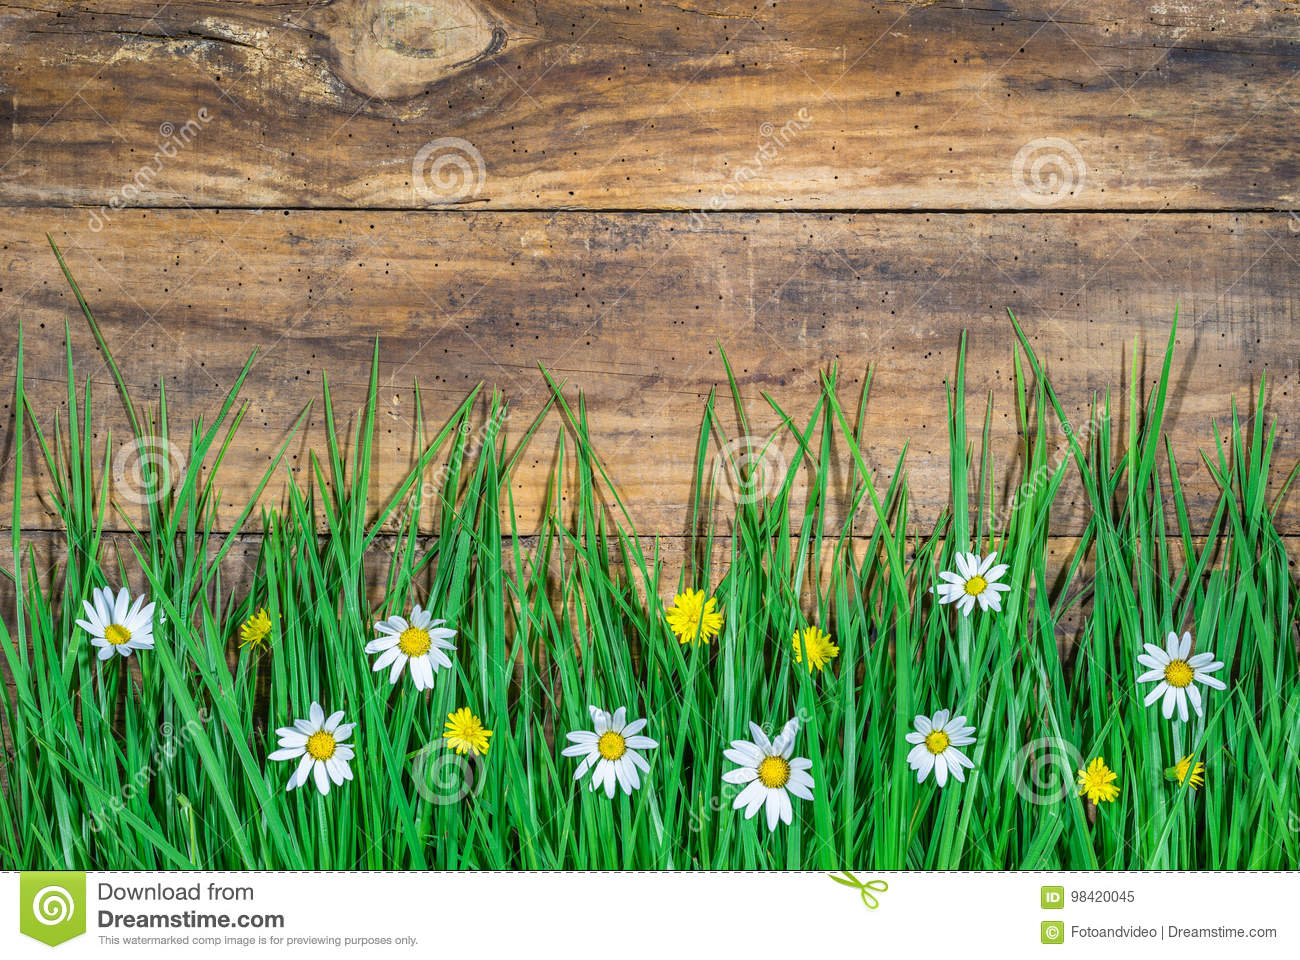 Blooming meadow with green grass and beautiful flowers stock image download blooming meadow with green grass and beautiful flowers stock image image of countryside izmirmasajfo